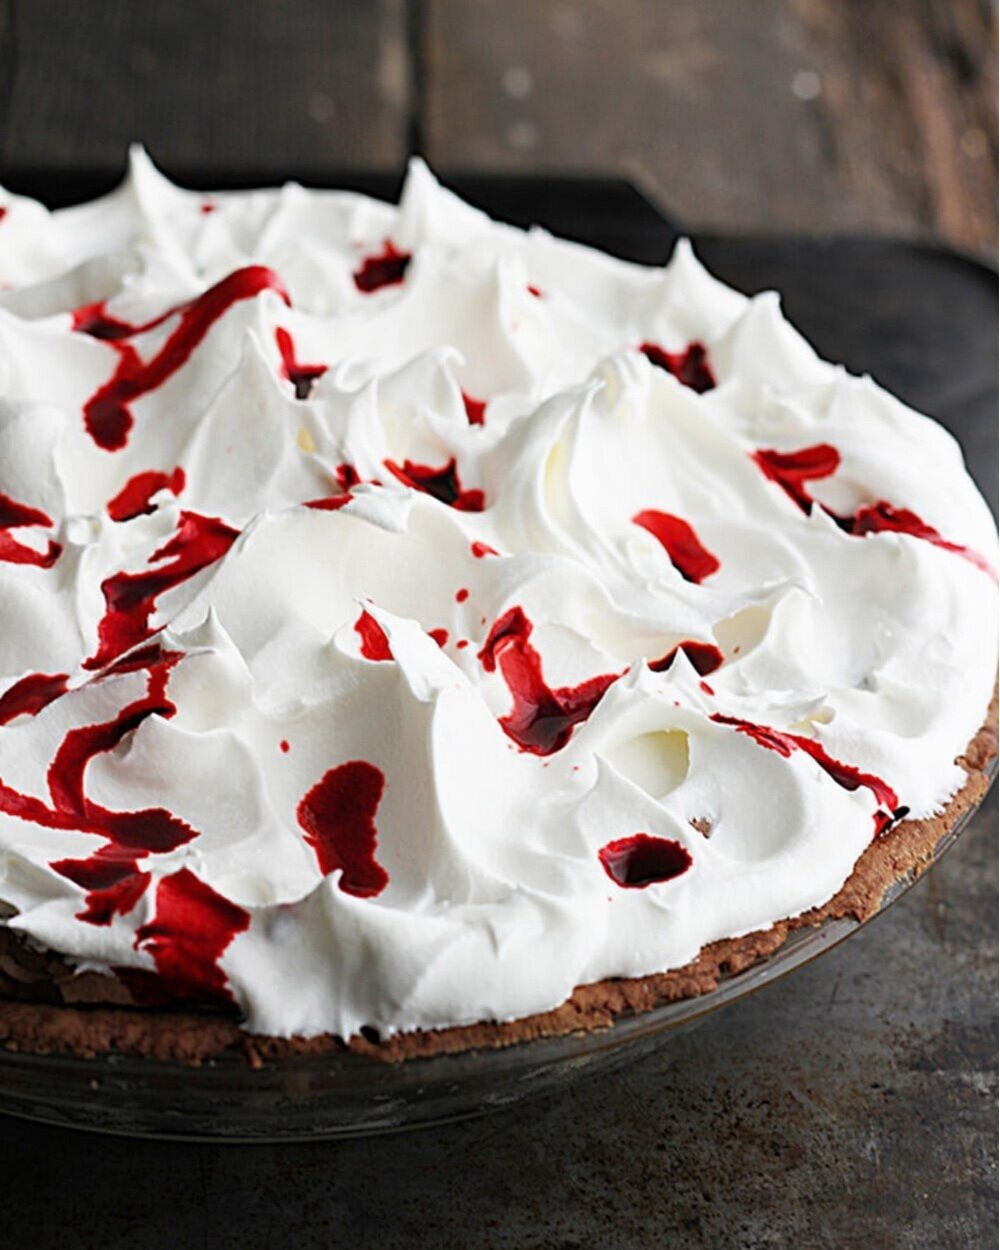 5. Mississippi Blood Pie - It's all in the name. This rich and decadent mud pie is equal parts creepy and delicious and makes for the perfect centerpiece for your Halloween party.Total Cook Time: 1hr 20 minutes